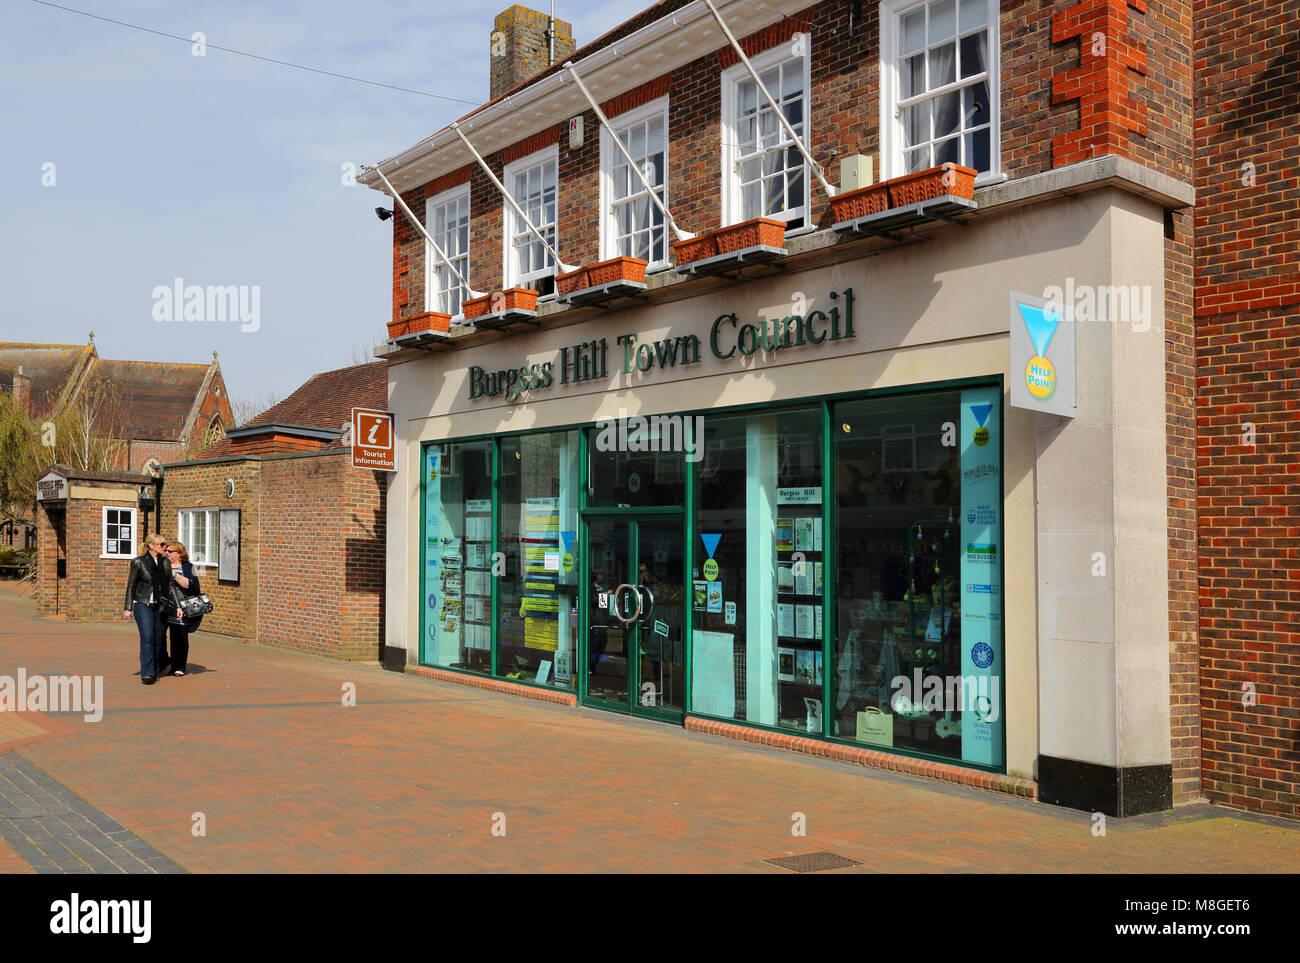 the town council in burgess hill west sussex - Stock Image